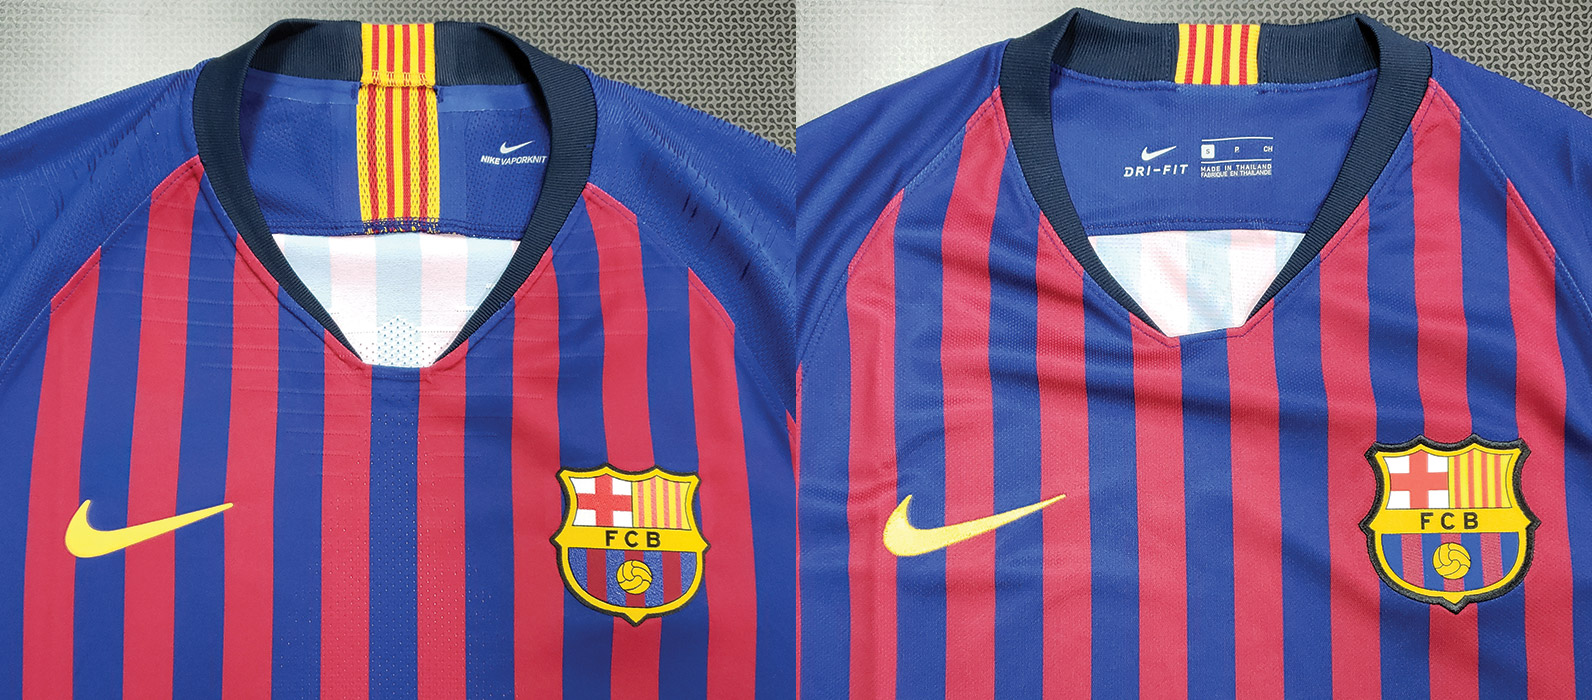 010b1820b88 Authentic vs. Replica Soccer Jerseys - AuthenticSoccer.com